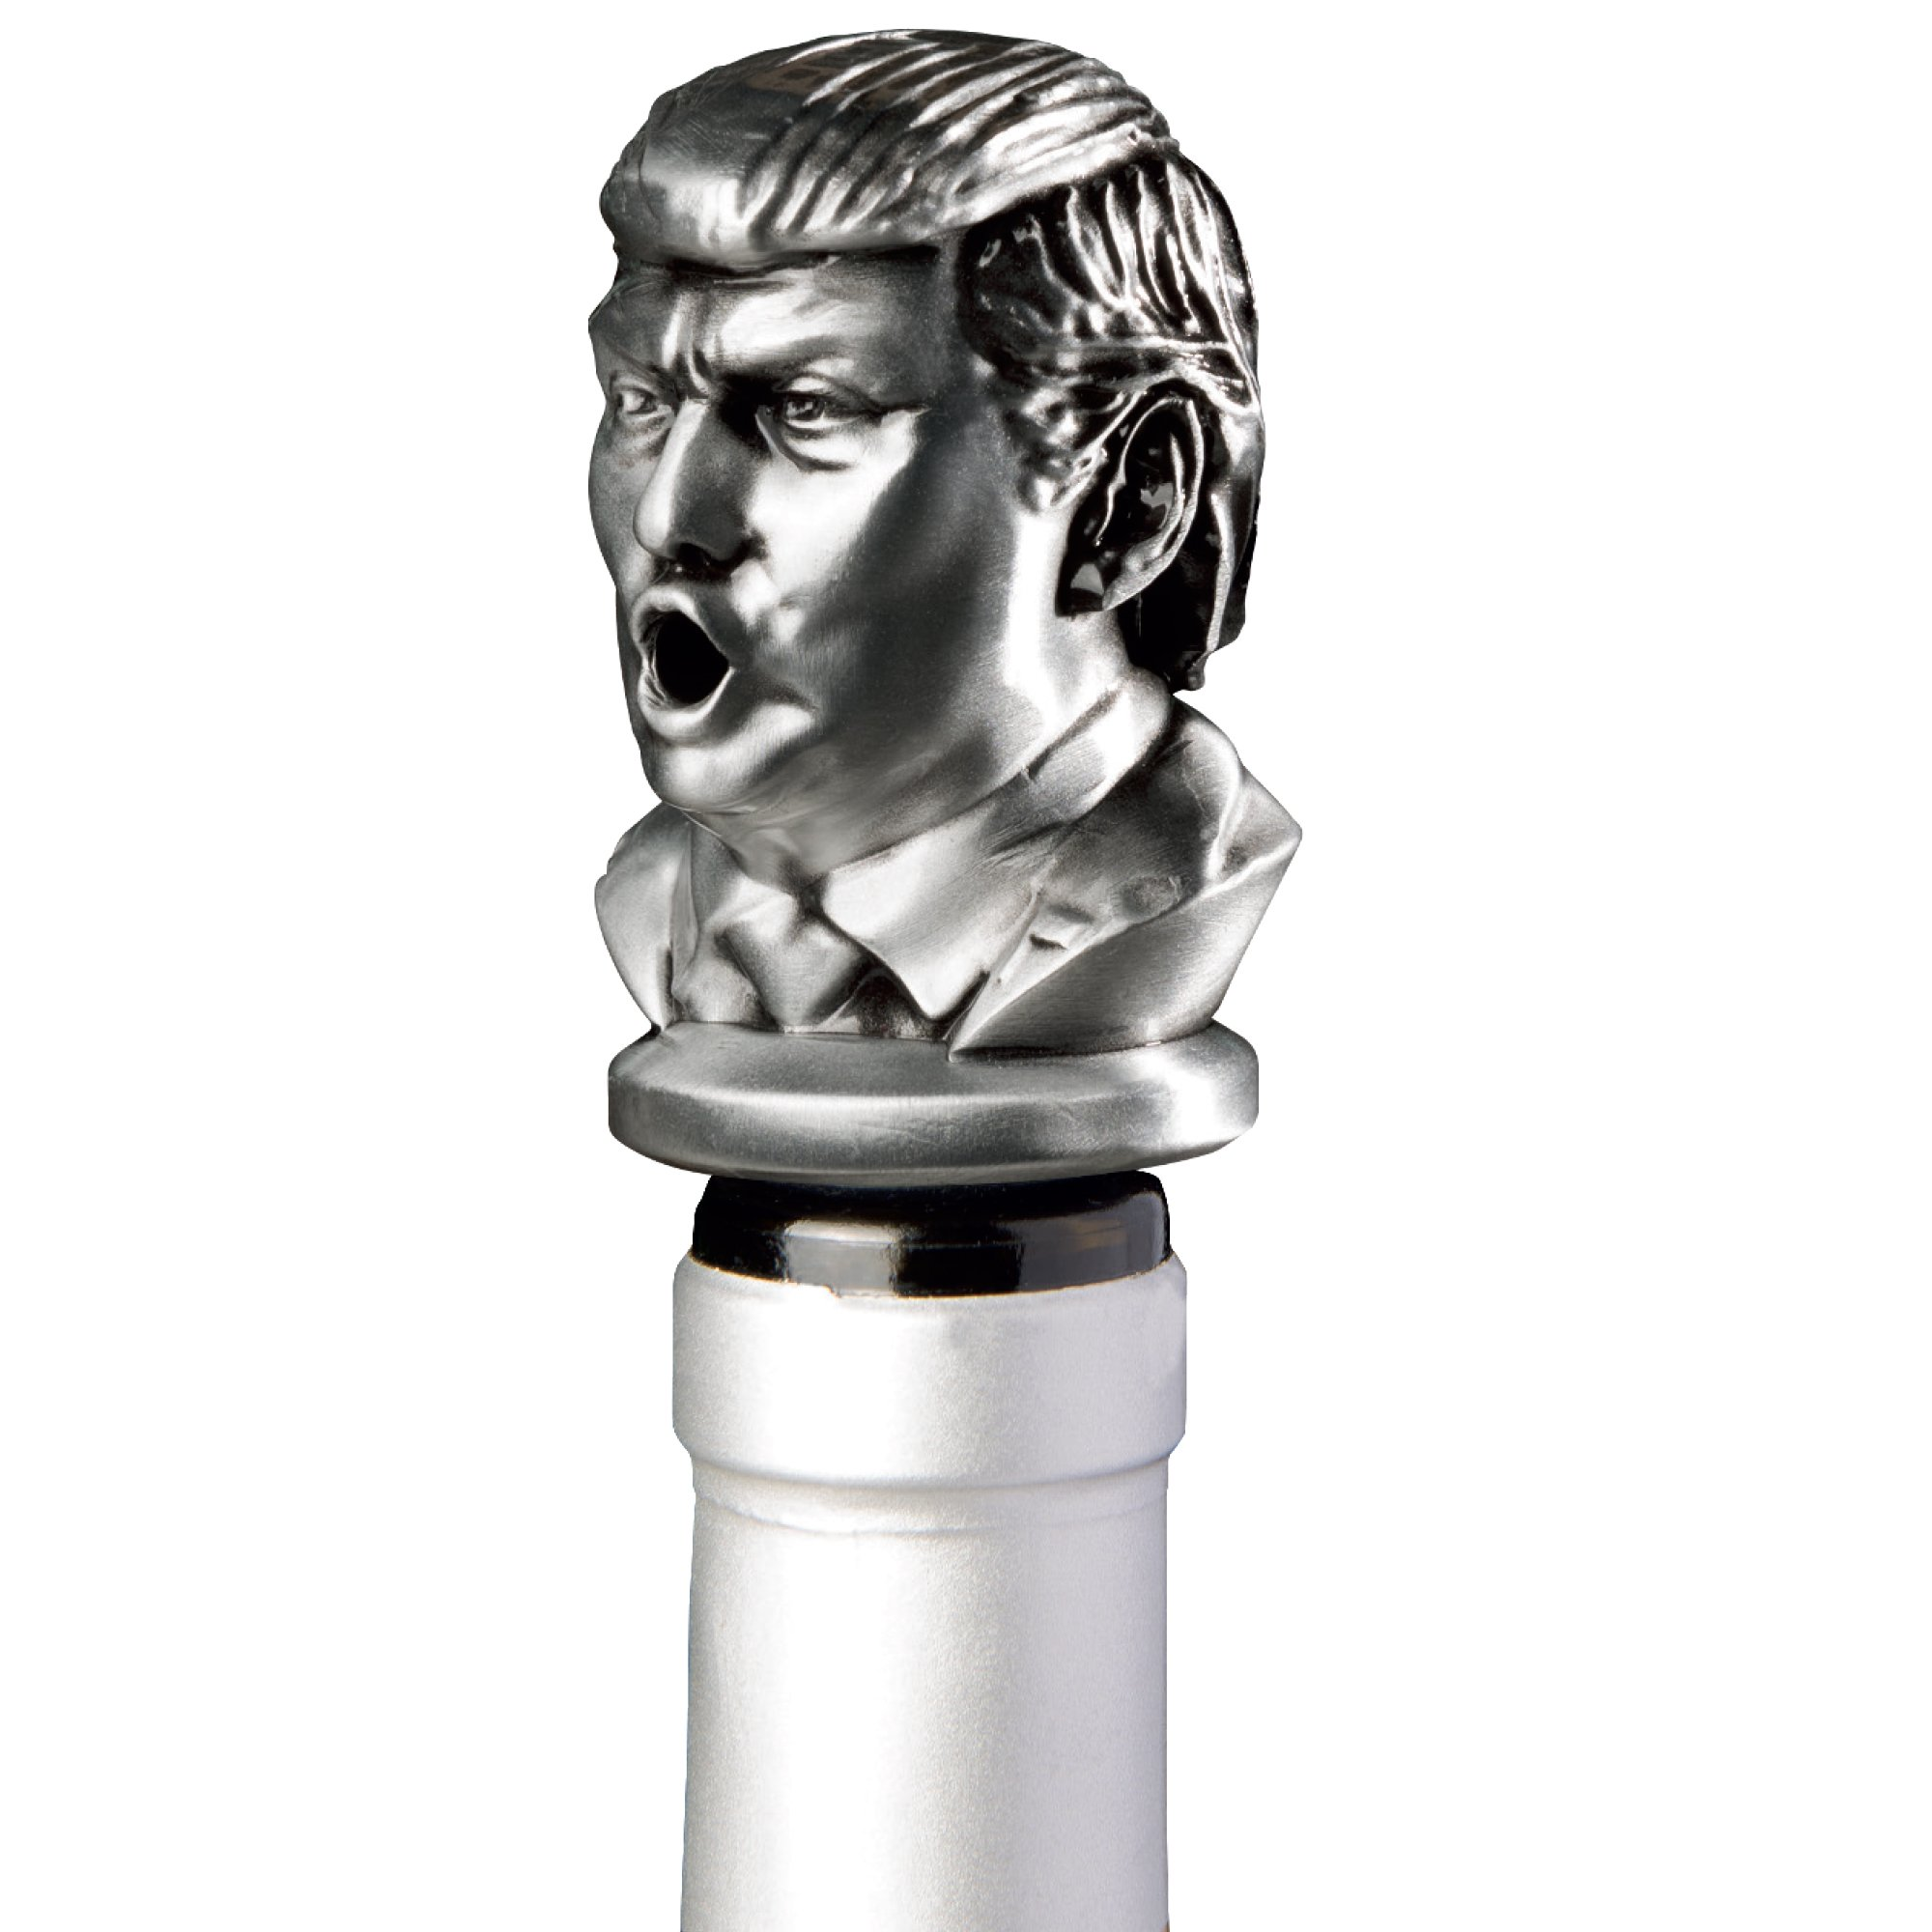 Stainless Steel Trump Wine Aerator Pourer - Deluxe Decanter Spout for Robust Red and White Wine - Pour Amore Bottle Pourer/Stopper & Air Diffuser by Chris's Stuff